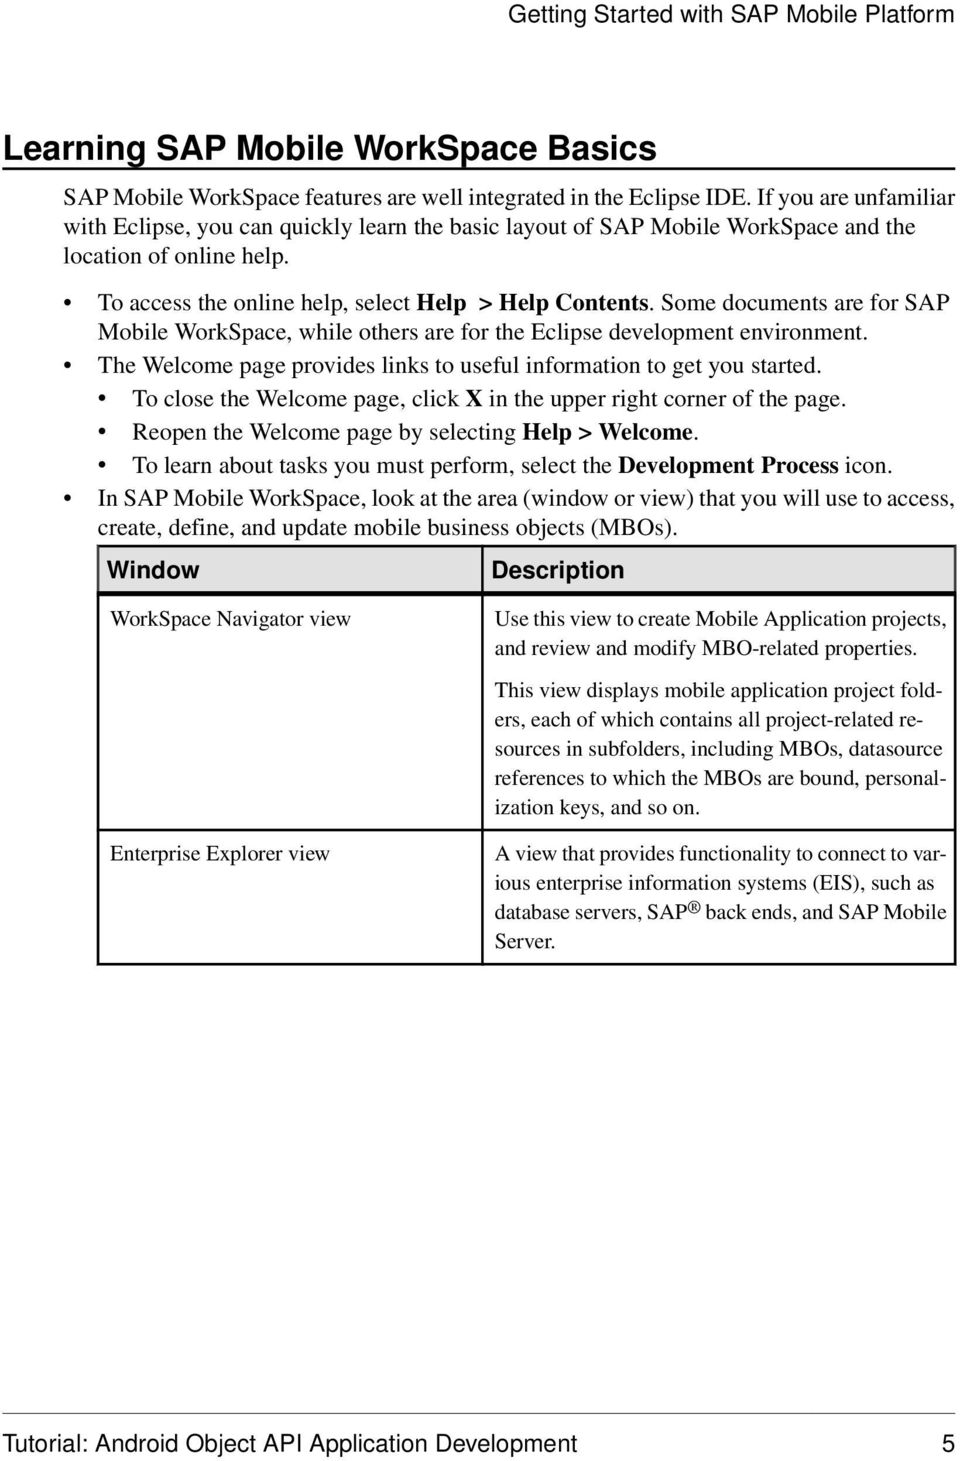 Some documents are for SAP Mobile WorkSpace, while others are for the Eclipse development environment. The Welcome page provides links to useful information to get you started.